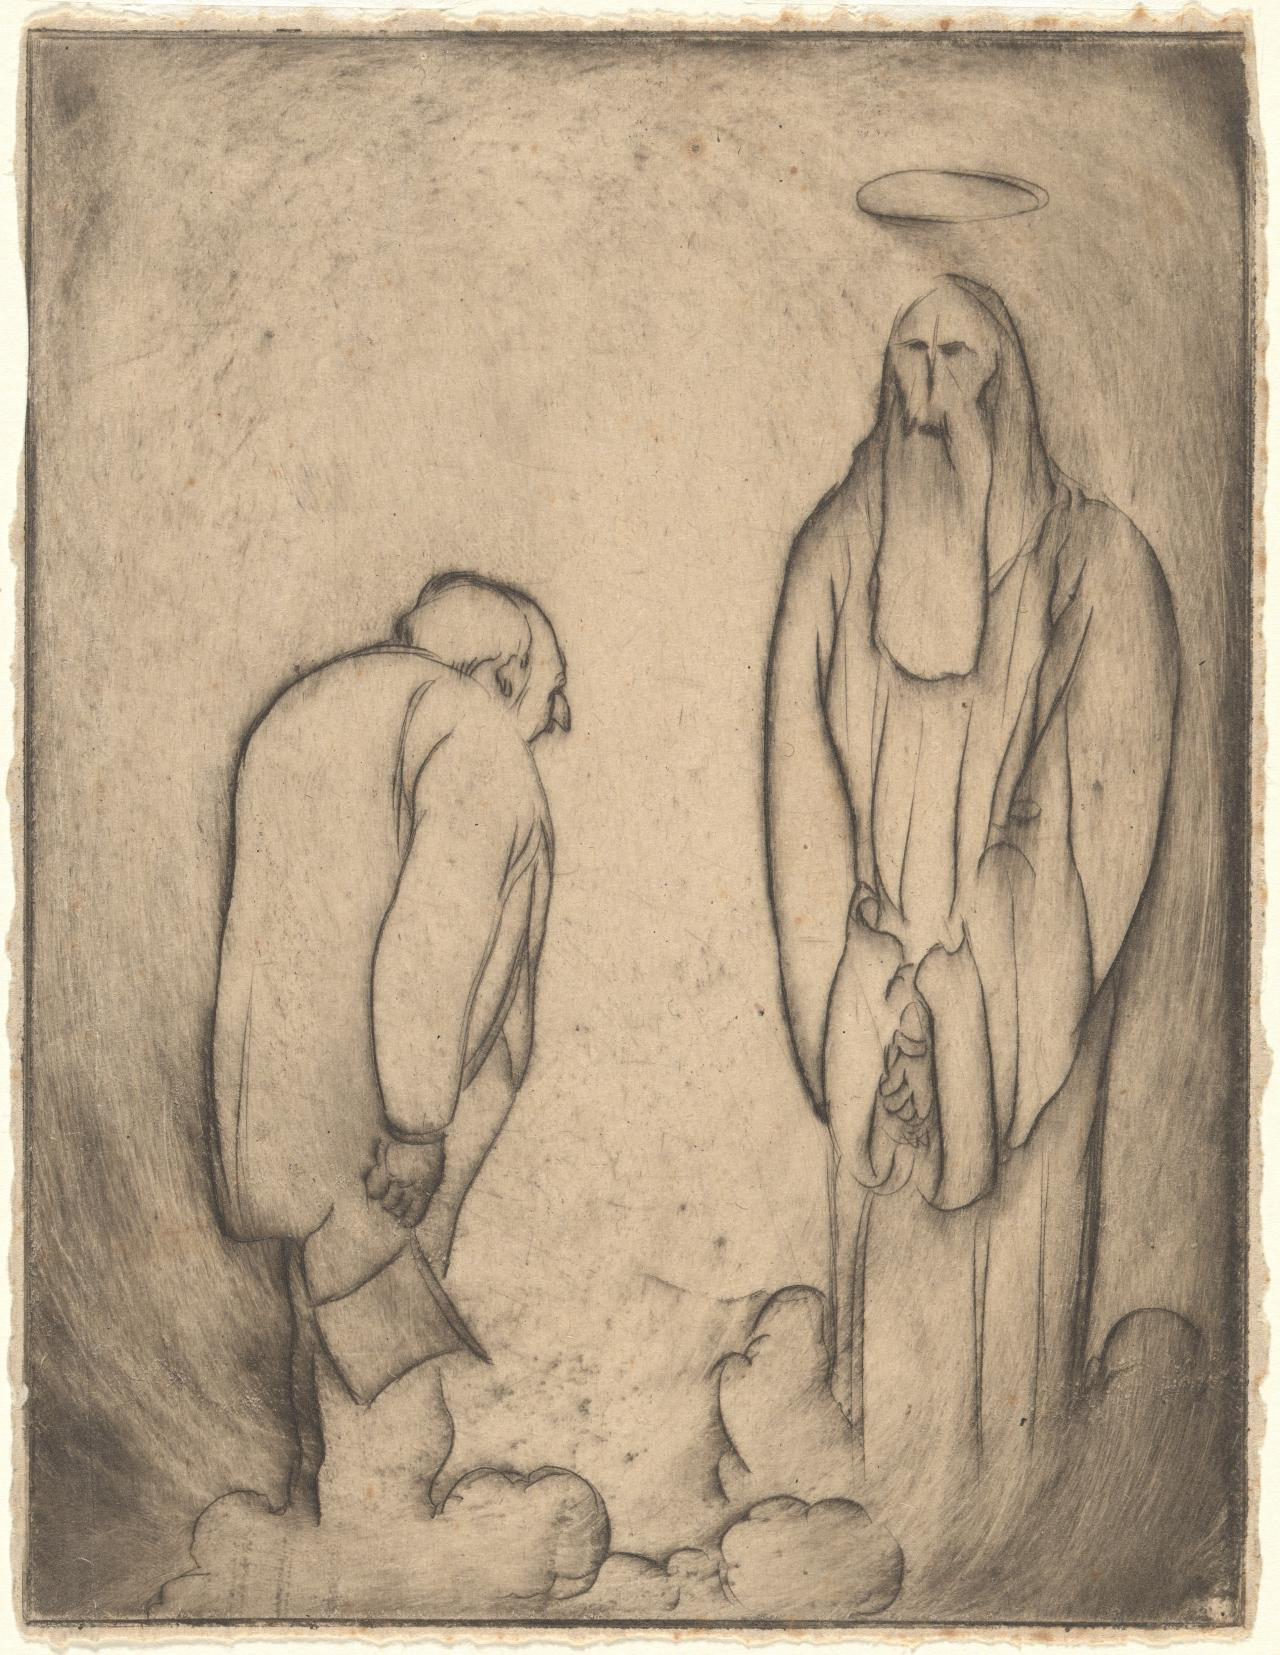 (Untitled) (Portly man in the presence of draped figure with halo)